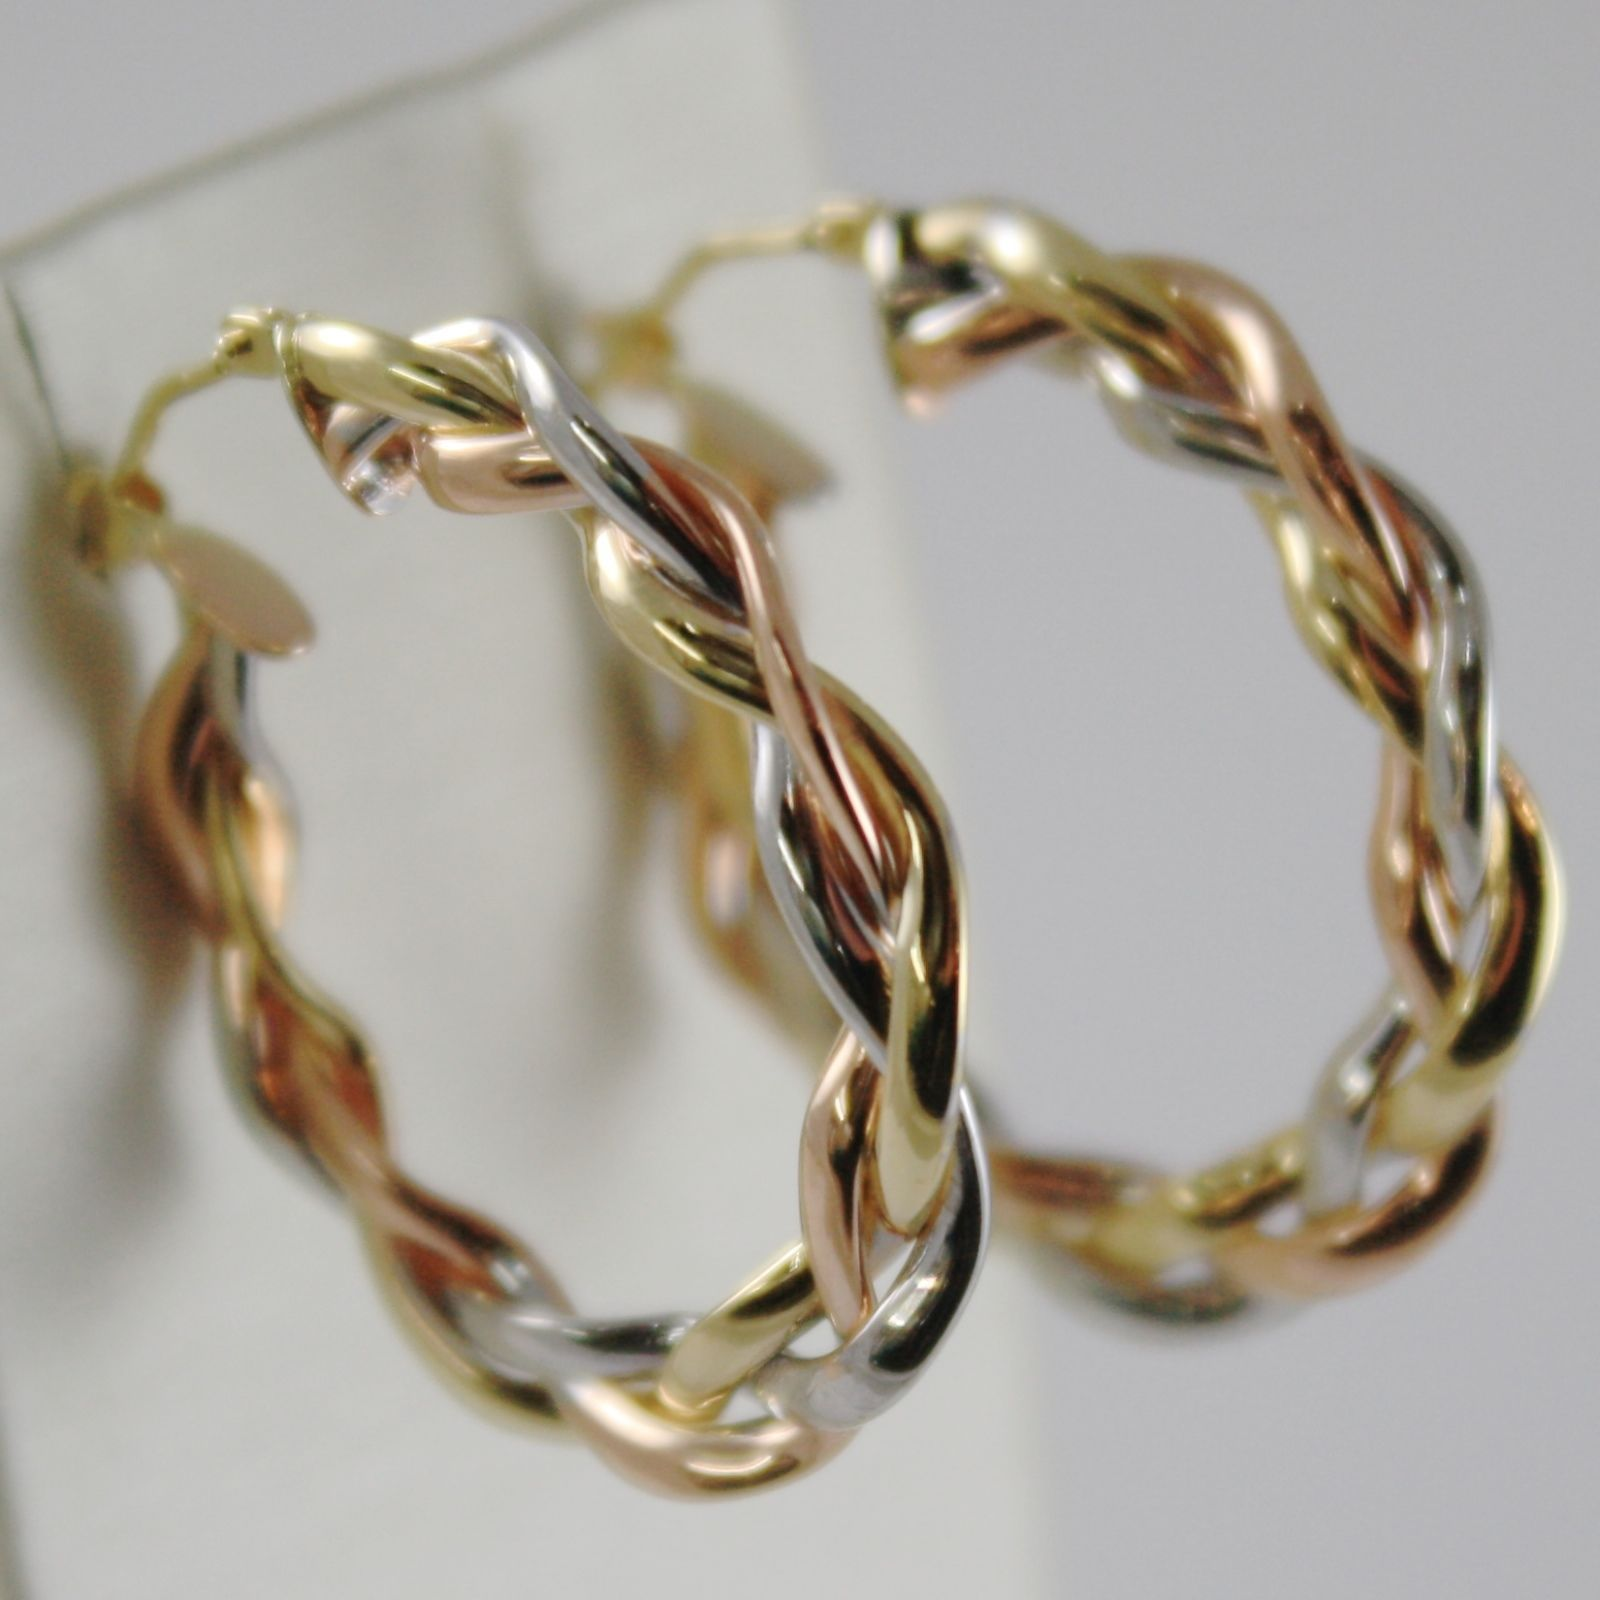 SOLID 18K YELLOW, WHITE AND ROSE GOLD CIRCLE, HOOP BRAID EARRINGS, MADE IN ITALY